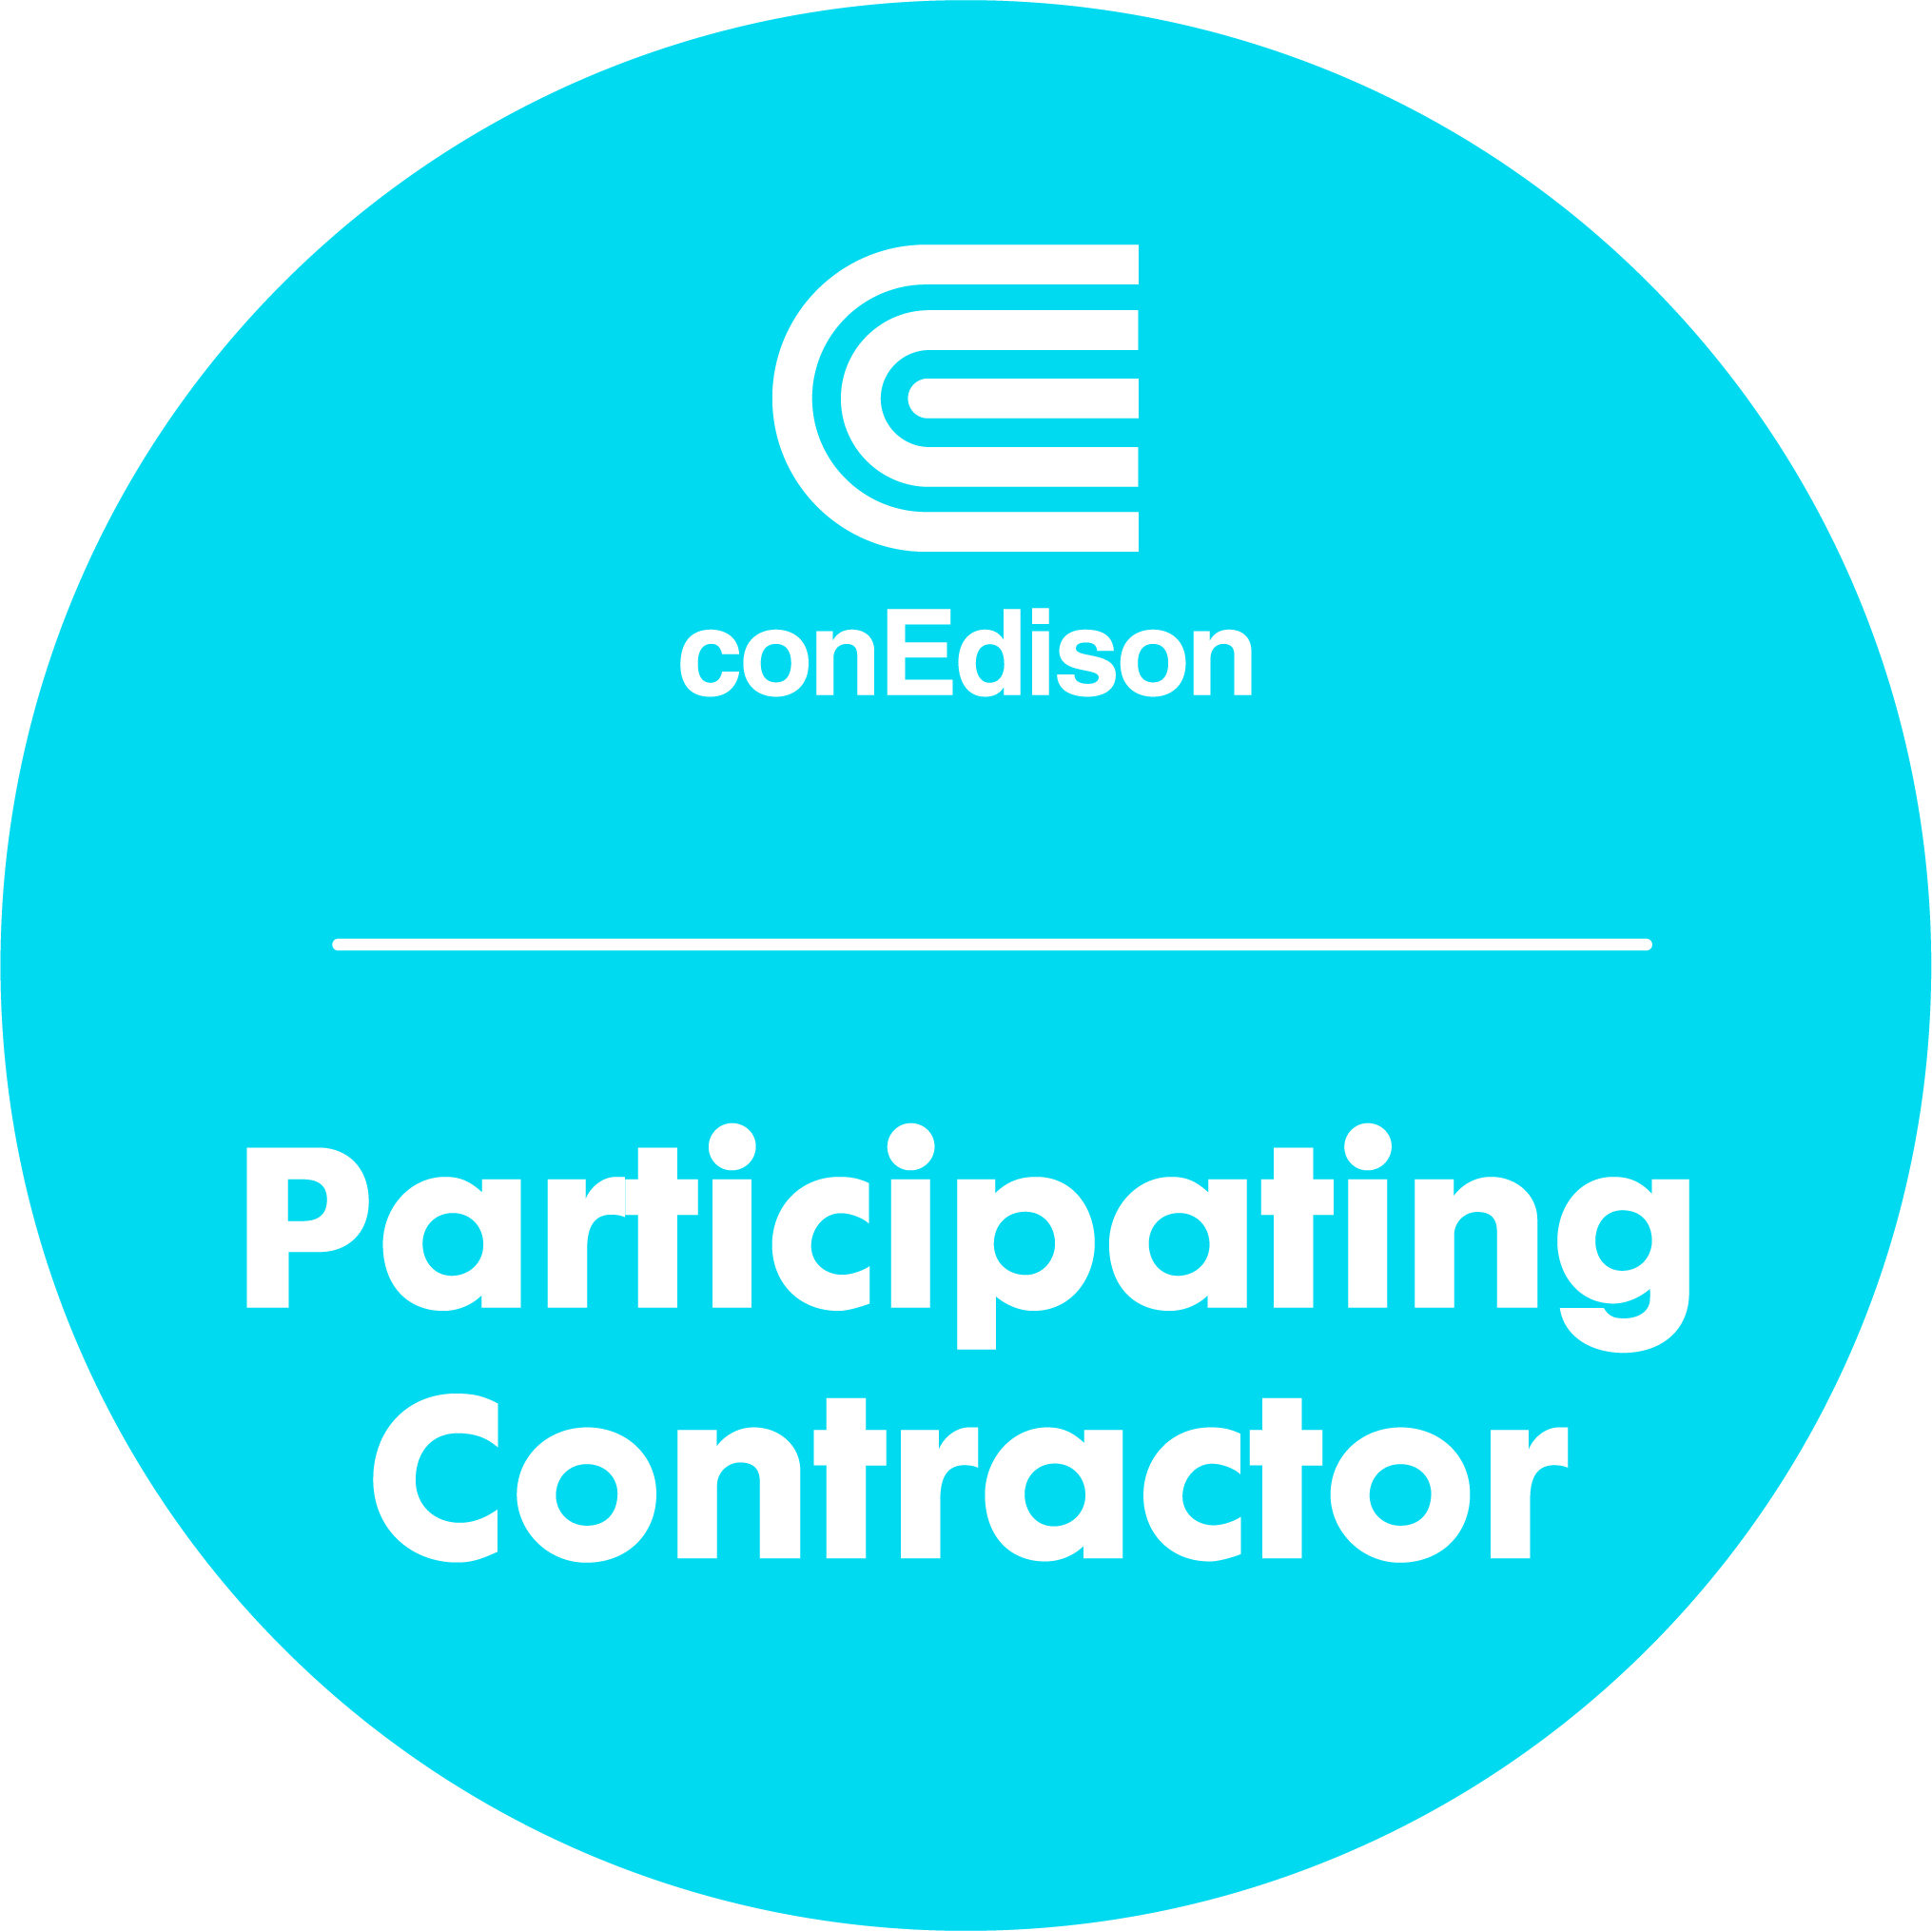 01_Participating-Contractor-Badge_Cyan.jpg